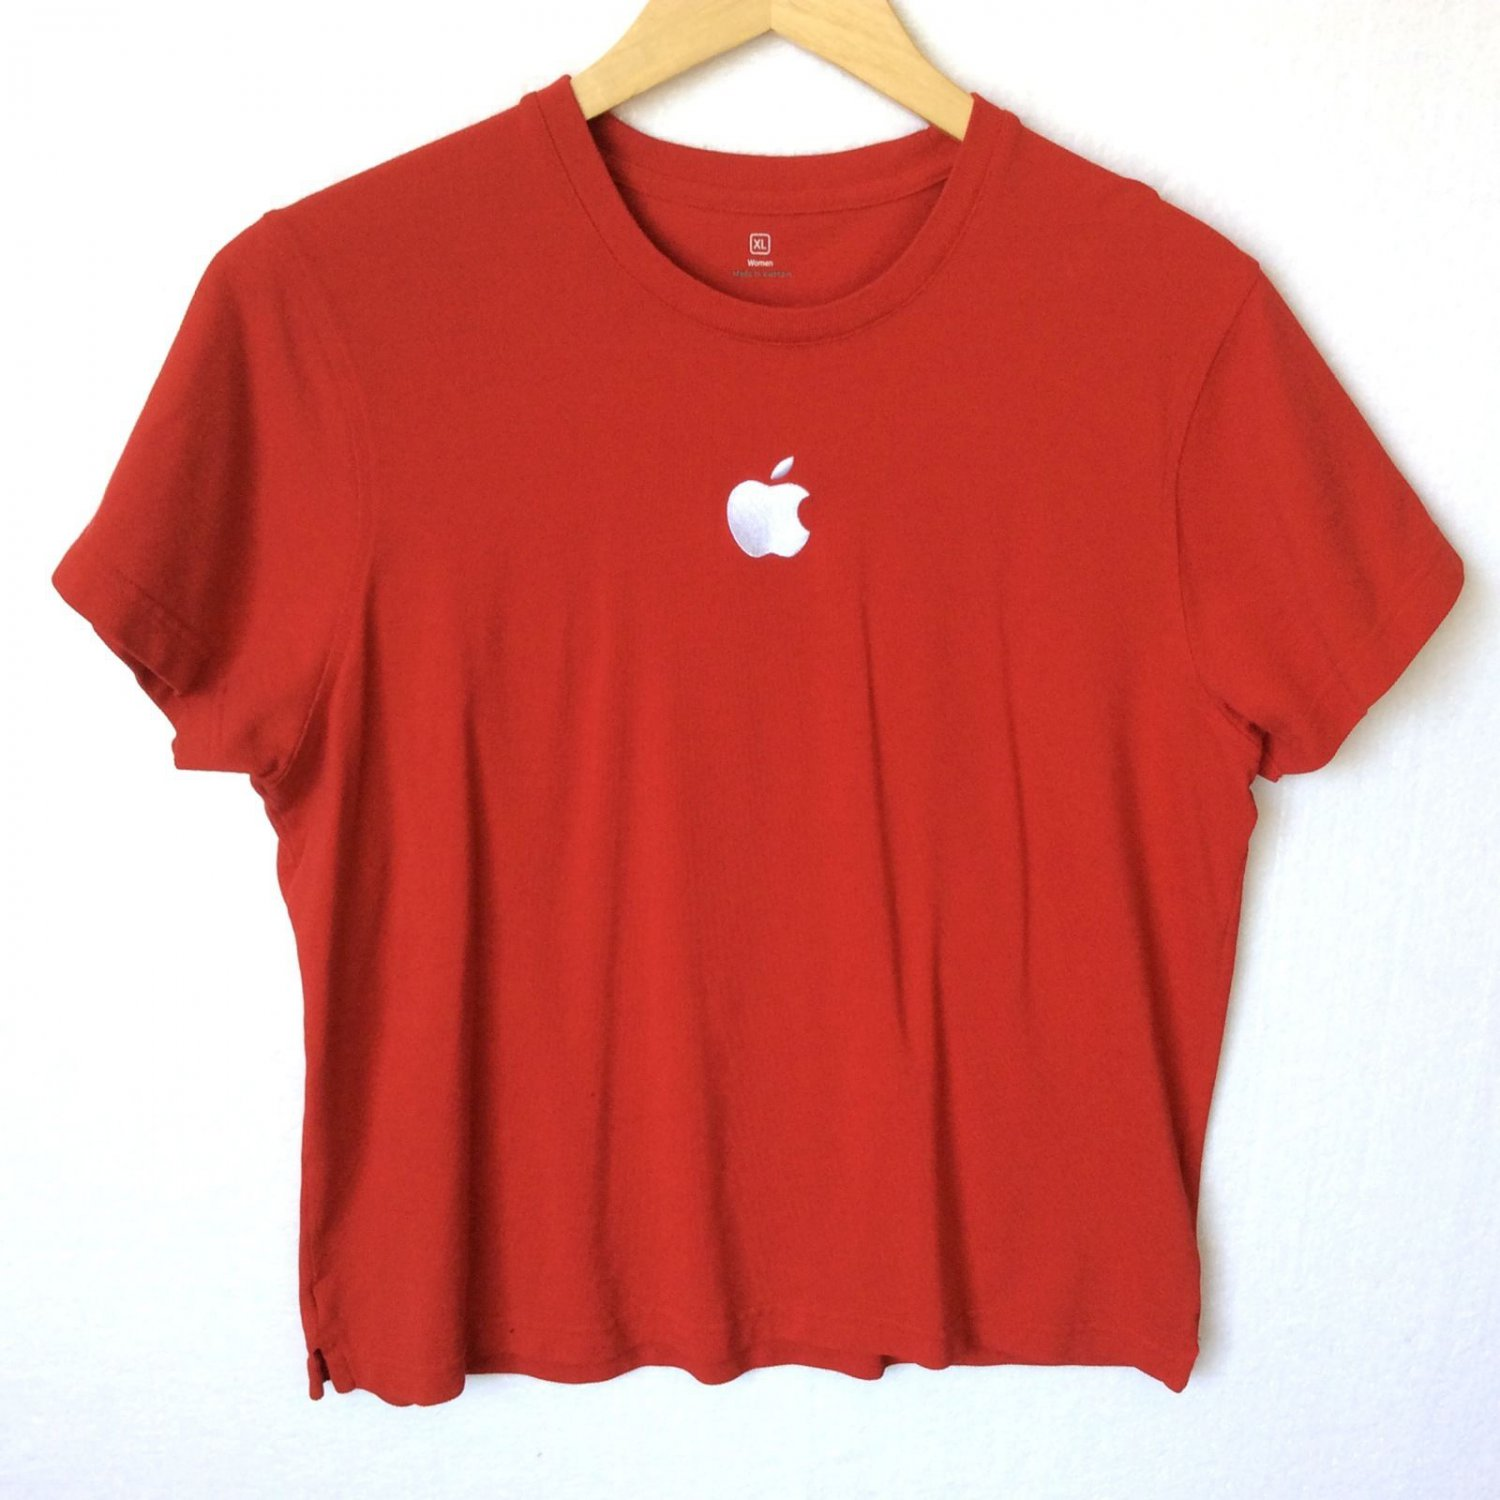 Apple store mac genius employee shirt red pique for Employee shirts embroidered logo